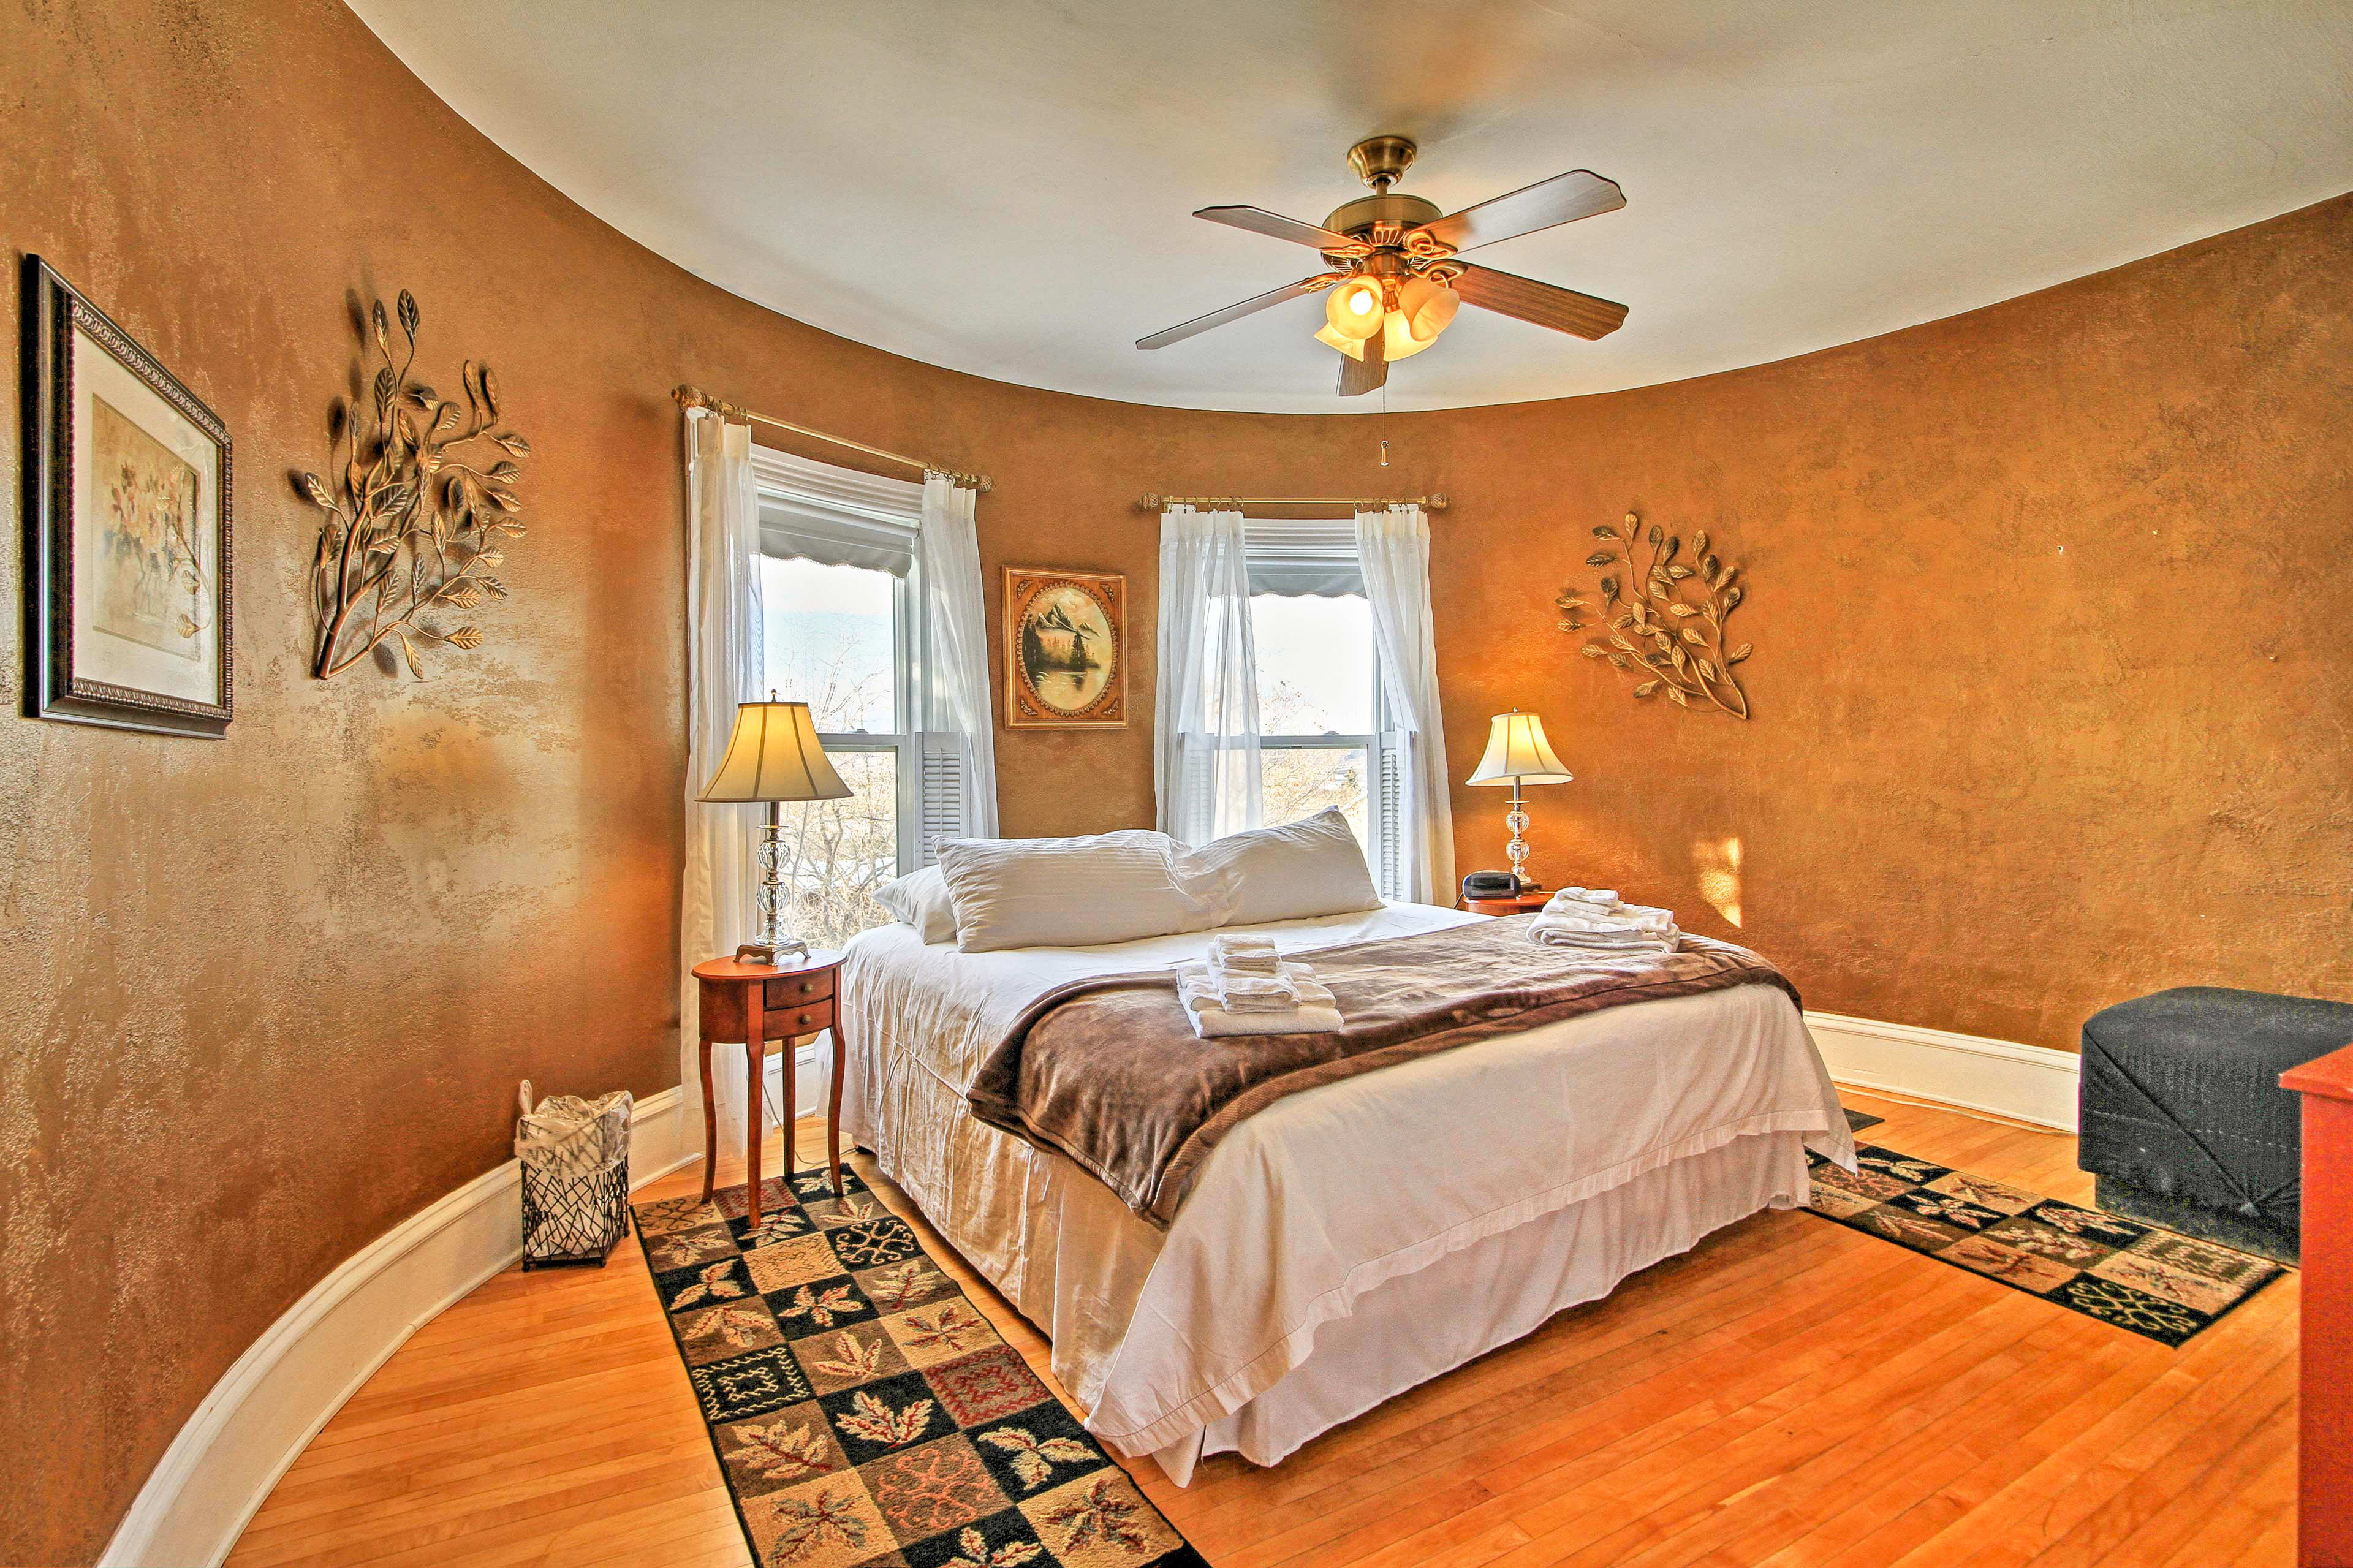 The Round Room boasts a unique layout and cozy king bed perfect for couples.